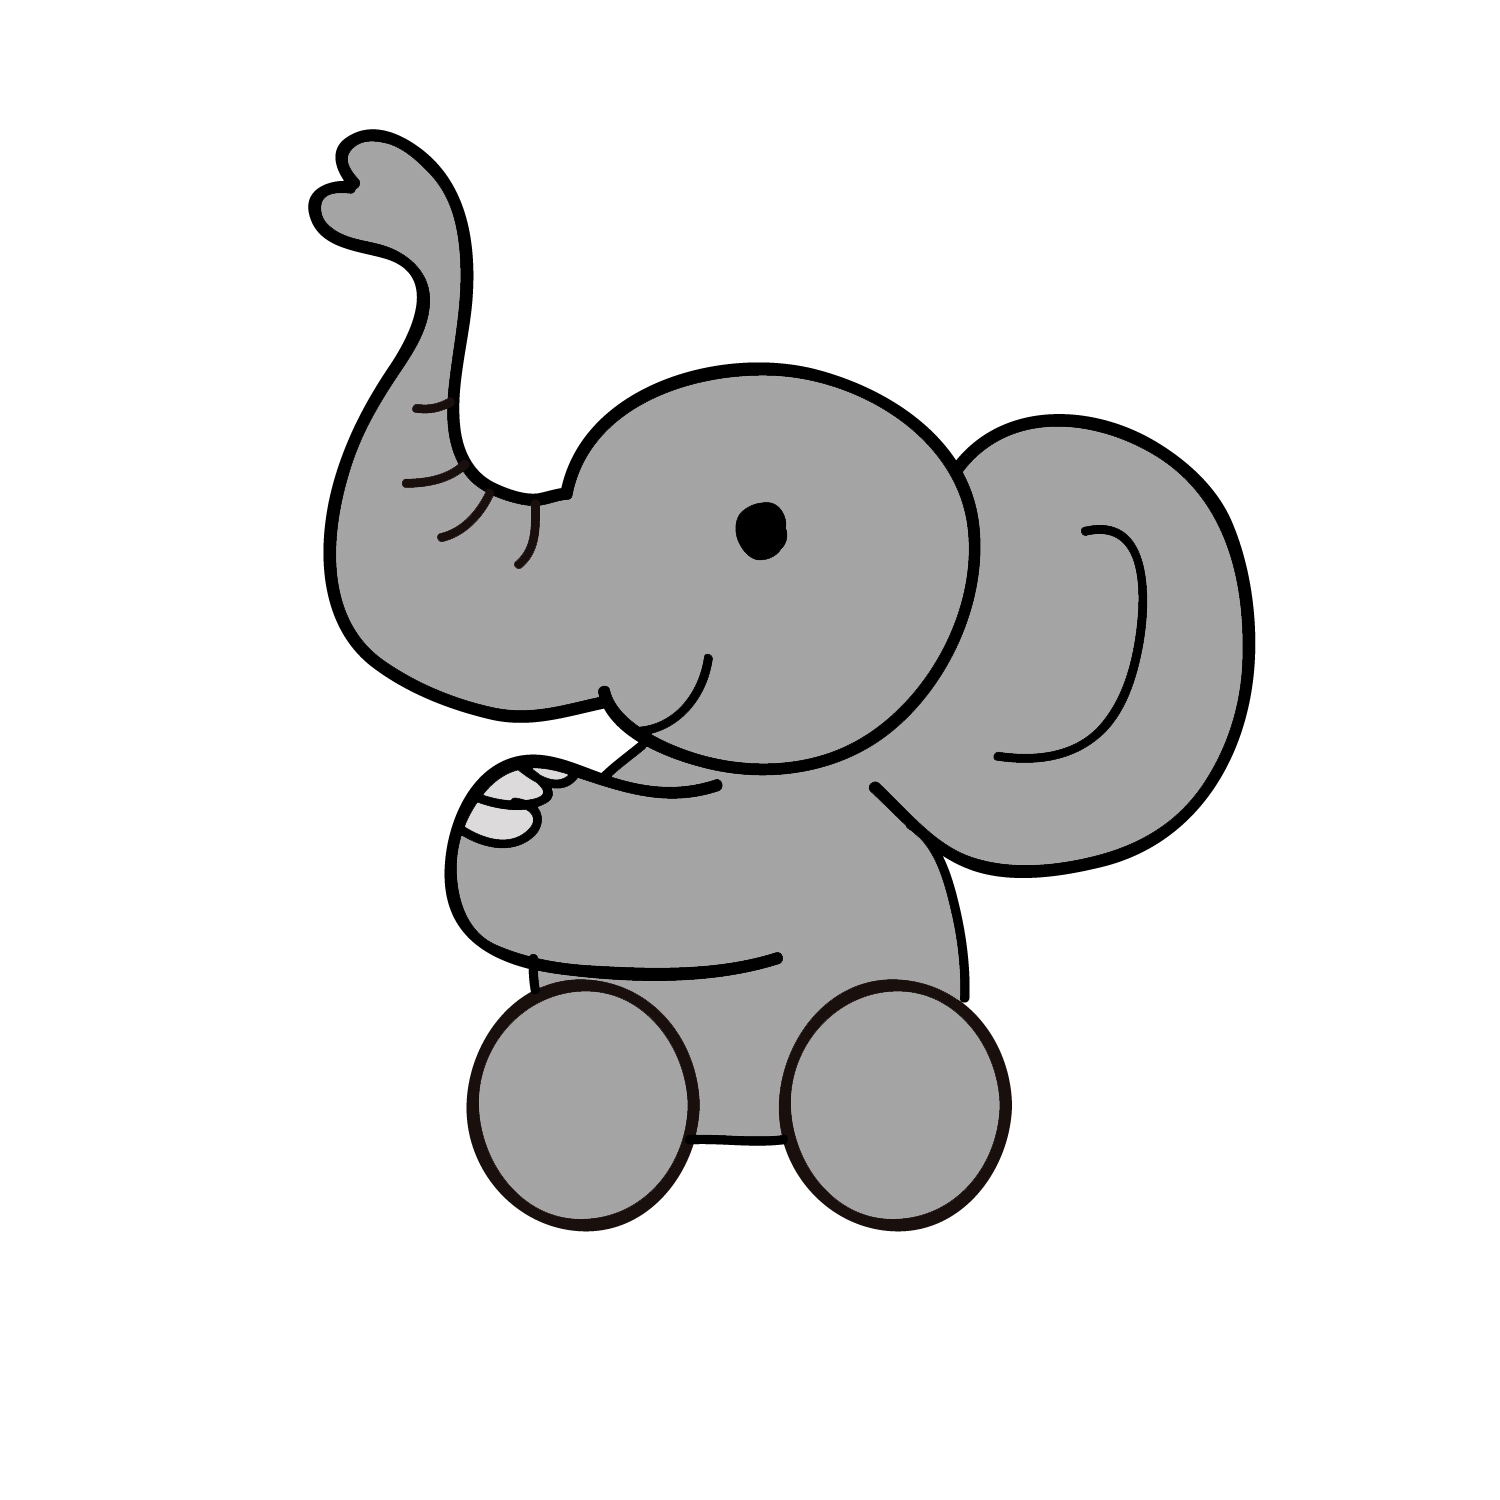 Baby Elephant Wallpaper Cartoon - WallpaperSafari